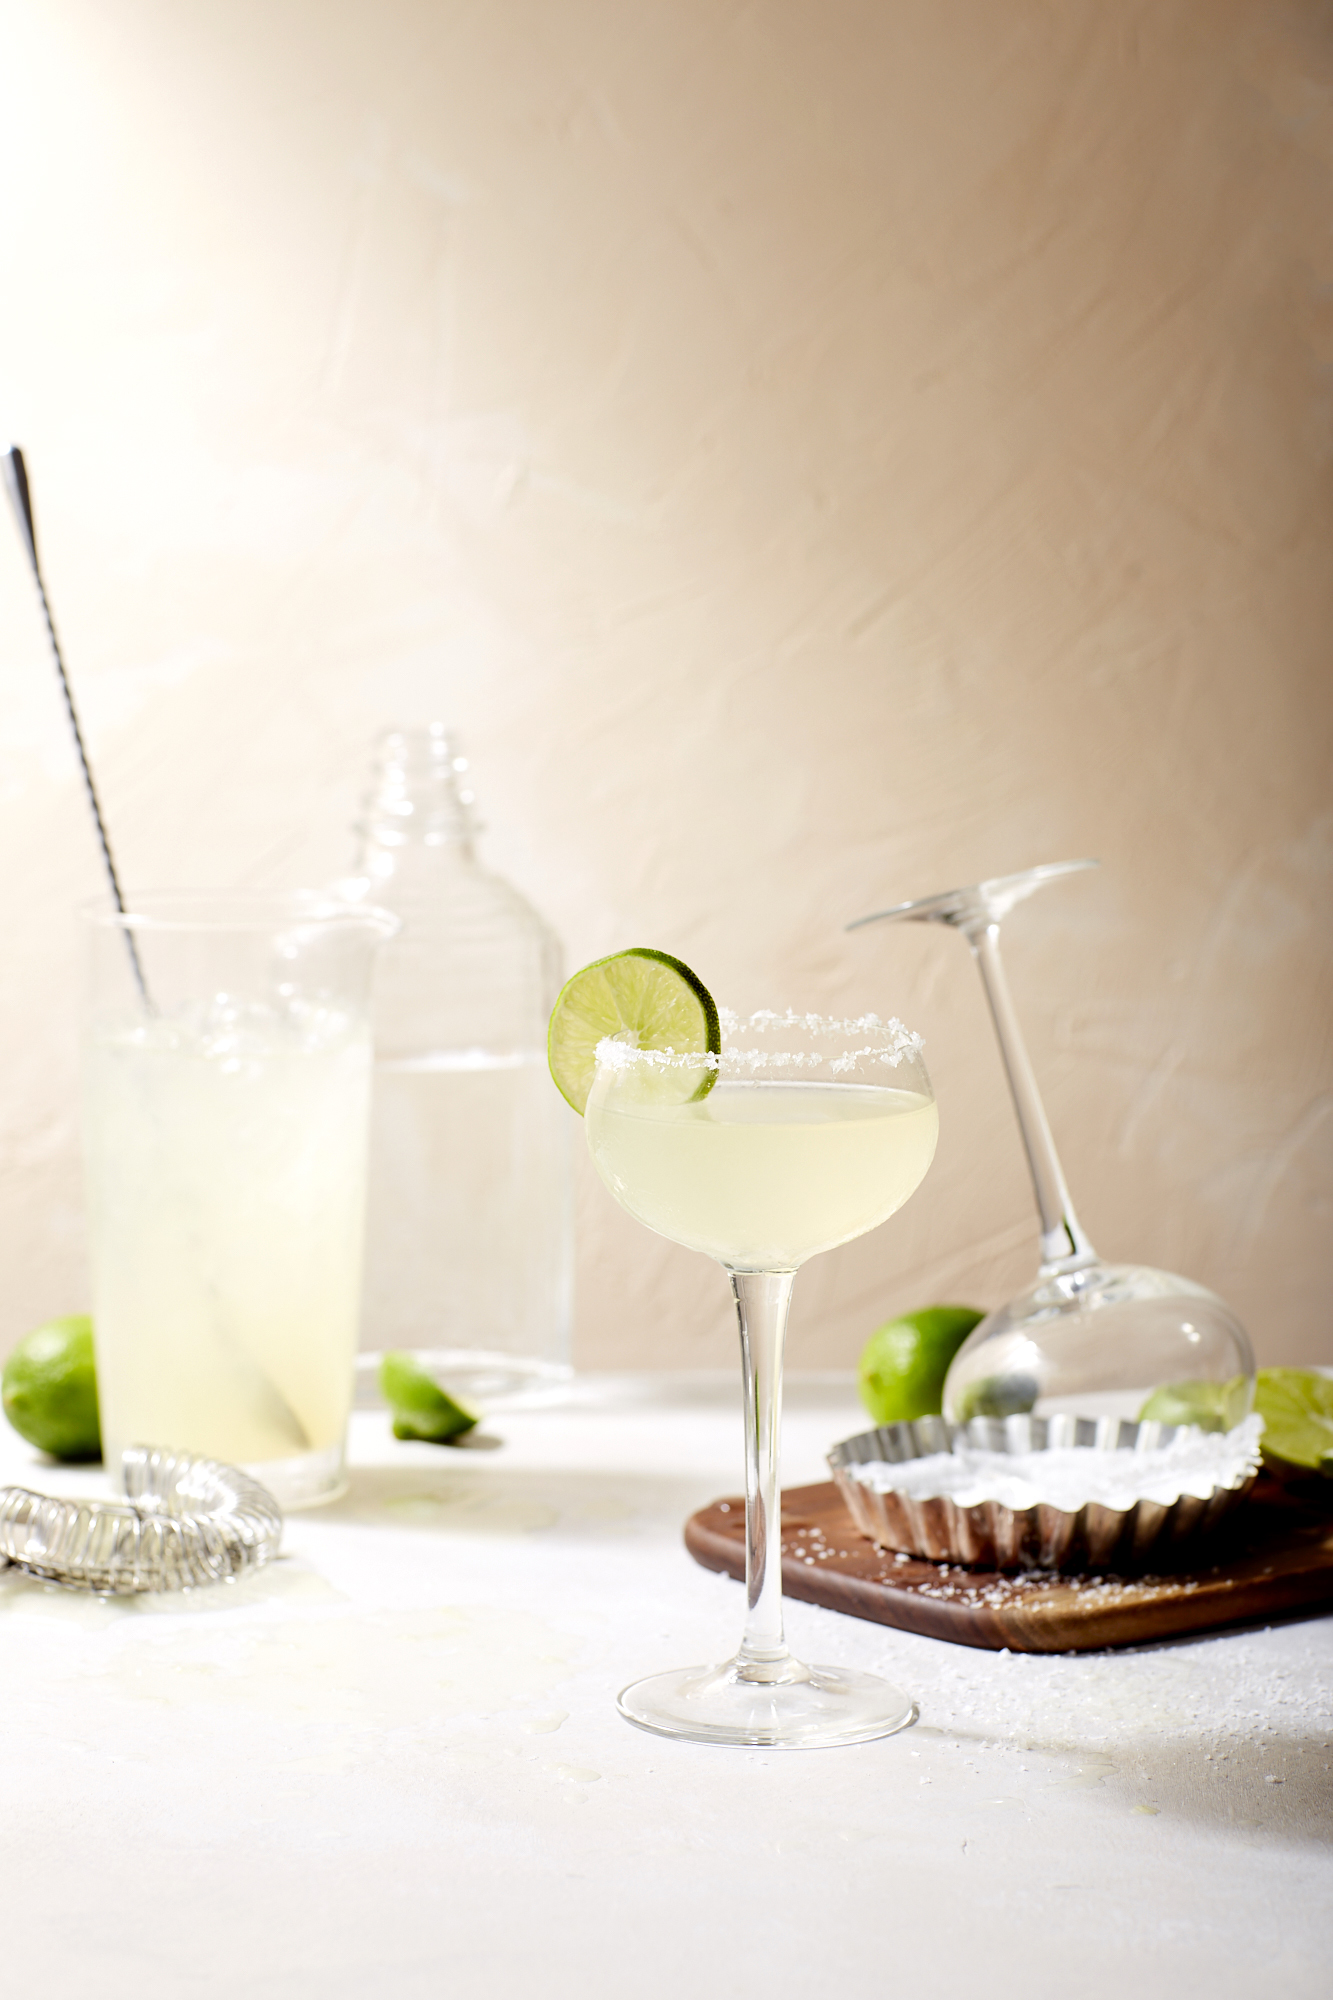 Katie Newburn | San Francisco Bay Area Food and Lifestyle Photographer | Margaritas